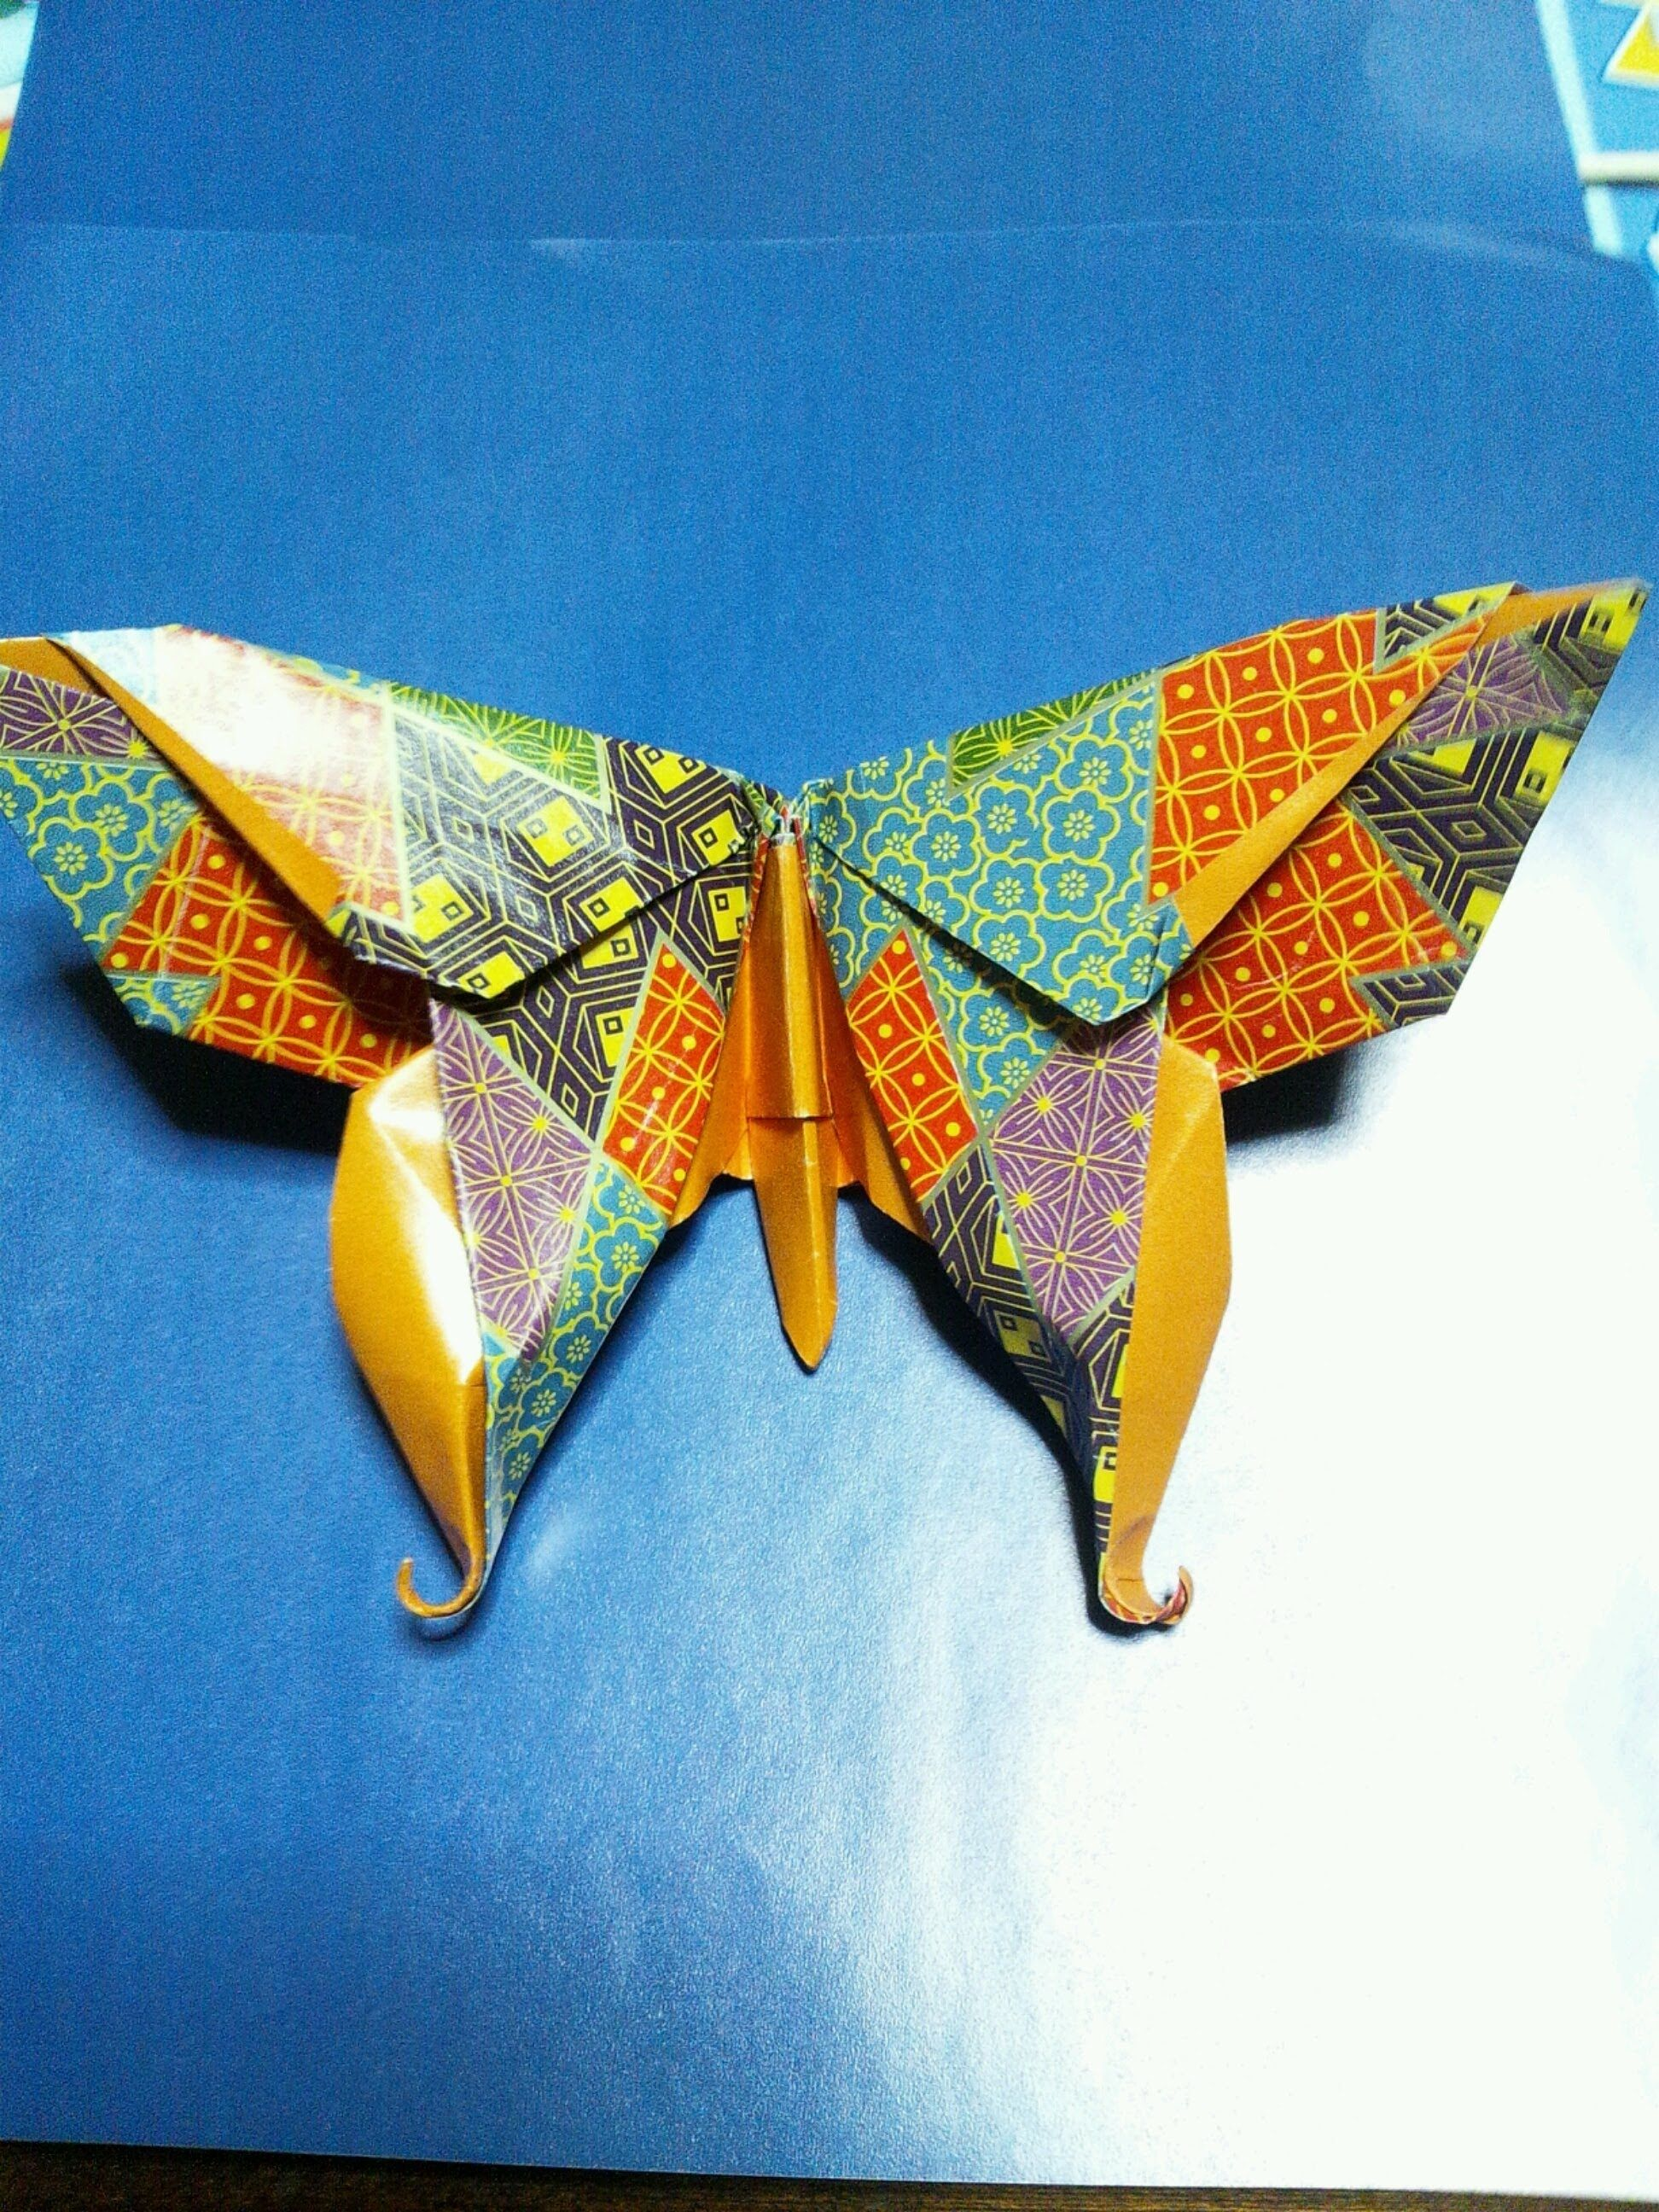 折り紙 「蝶」折り方 origami butterfly - Michael G.lafosse | origami ... - photo#19